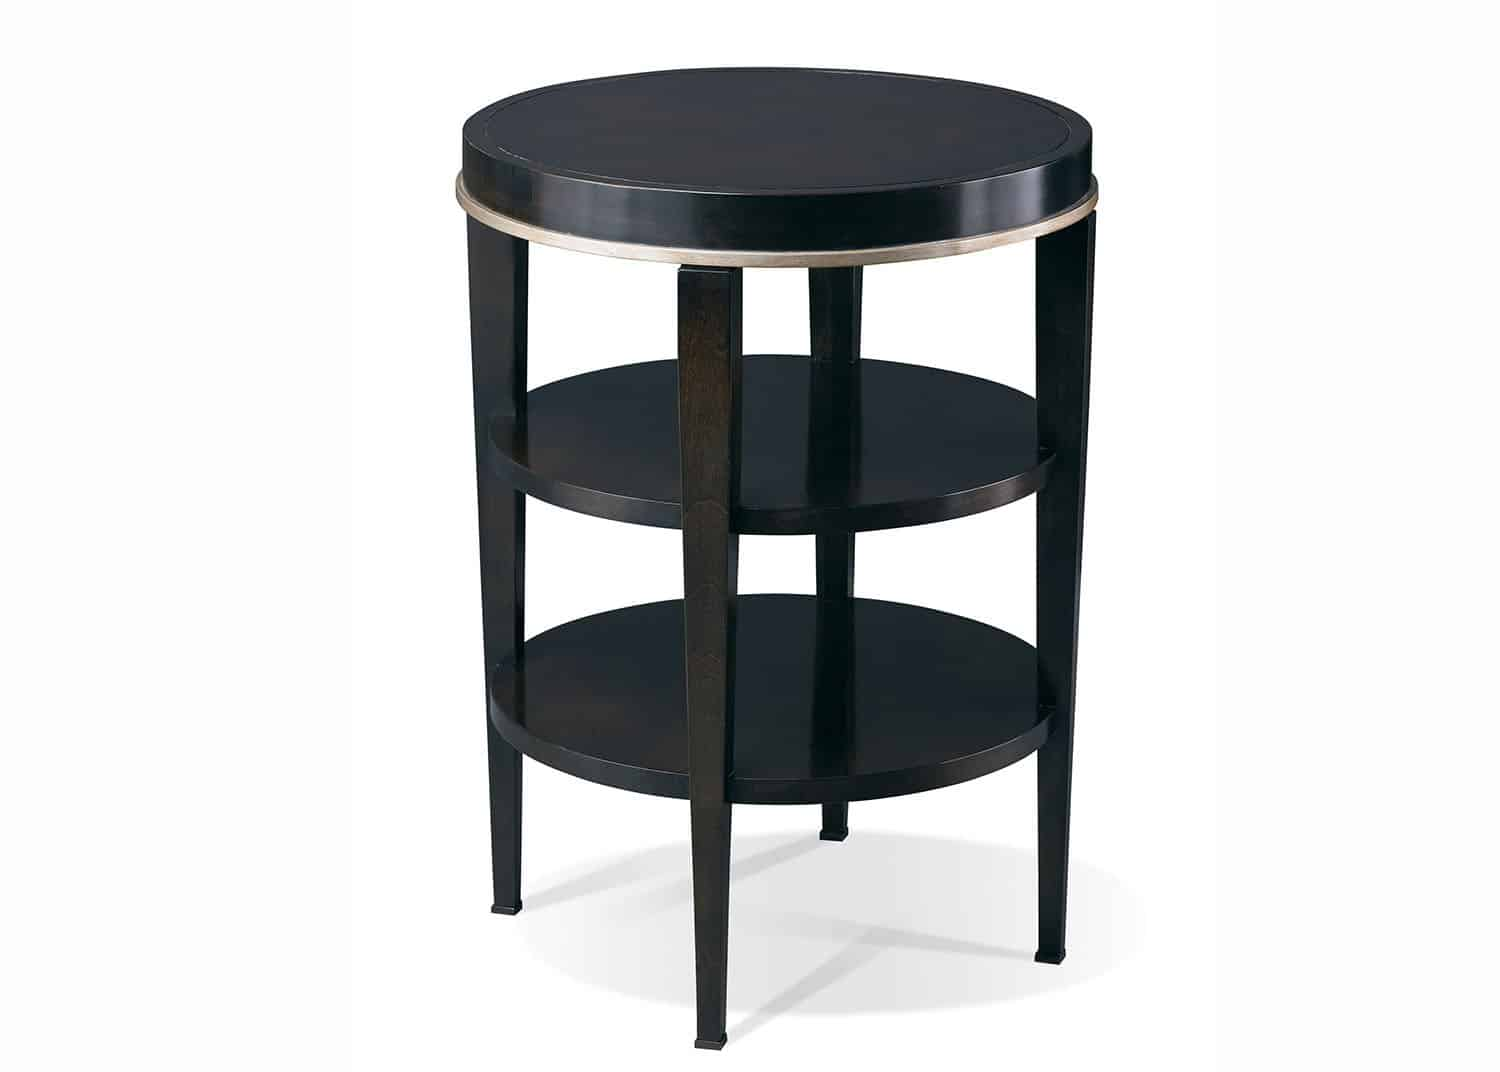 Wicks table d appoint mobilart decor high end furniture - Table ronde d appoint ...